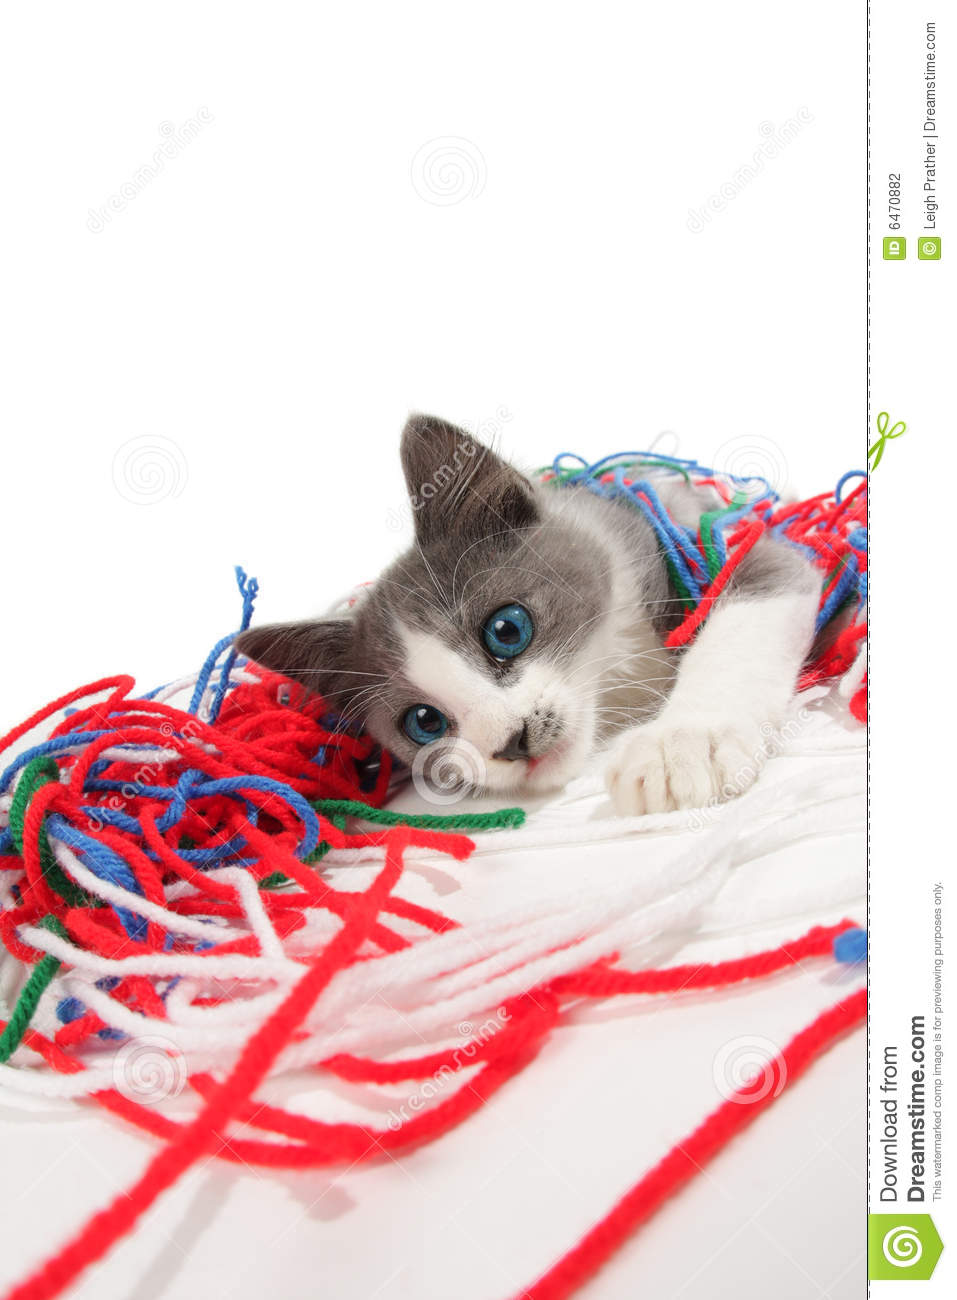 Kitten Playing With Yarn Stock Photography - Image: 6470882